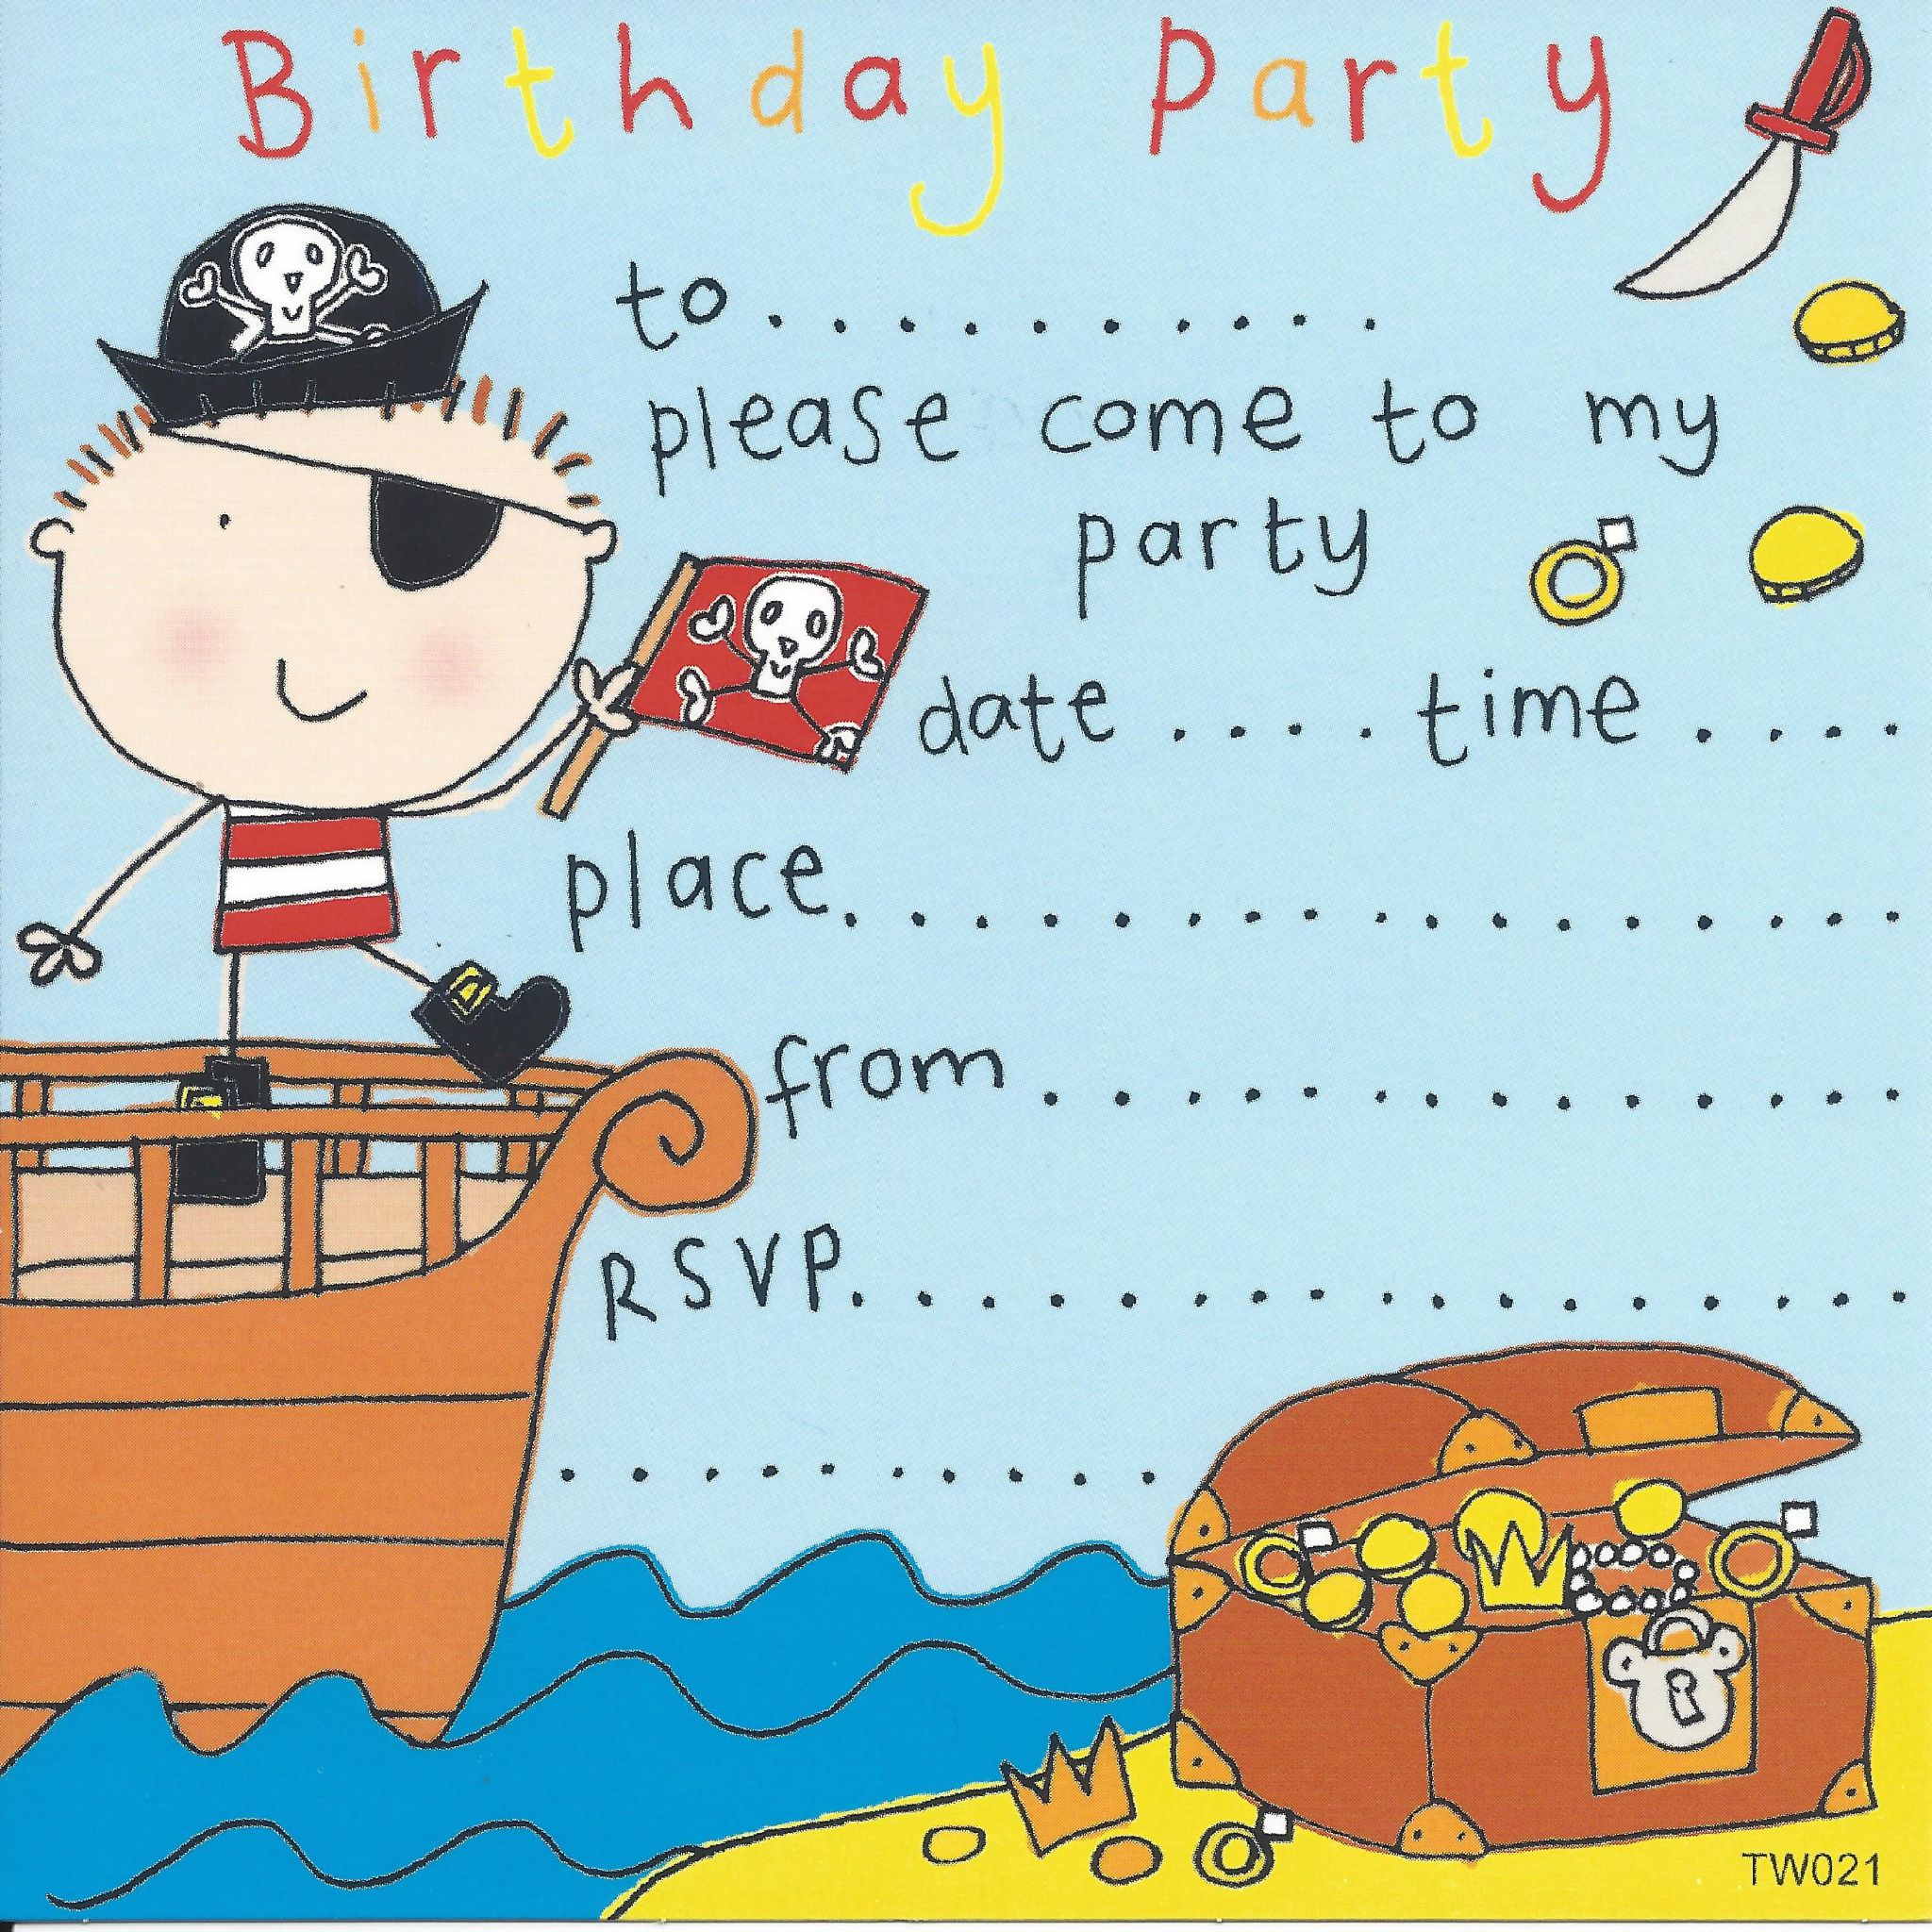 party invitations birthday party invitations kids party – Pirate Party Invite